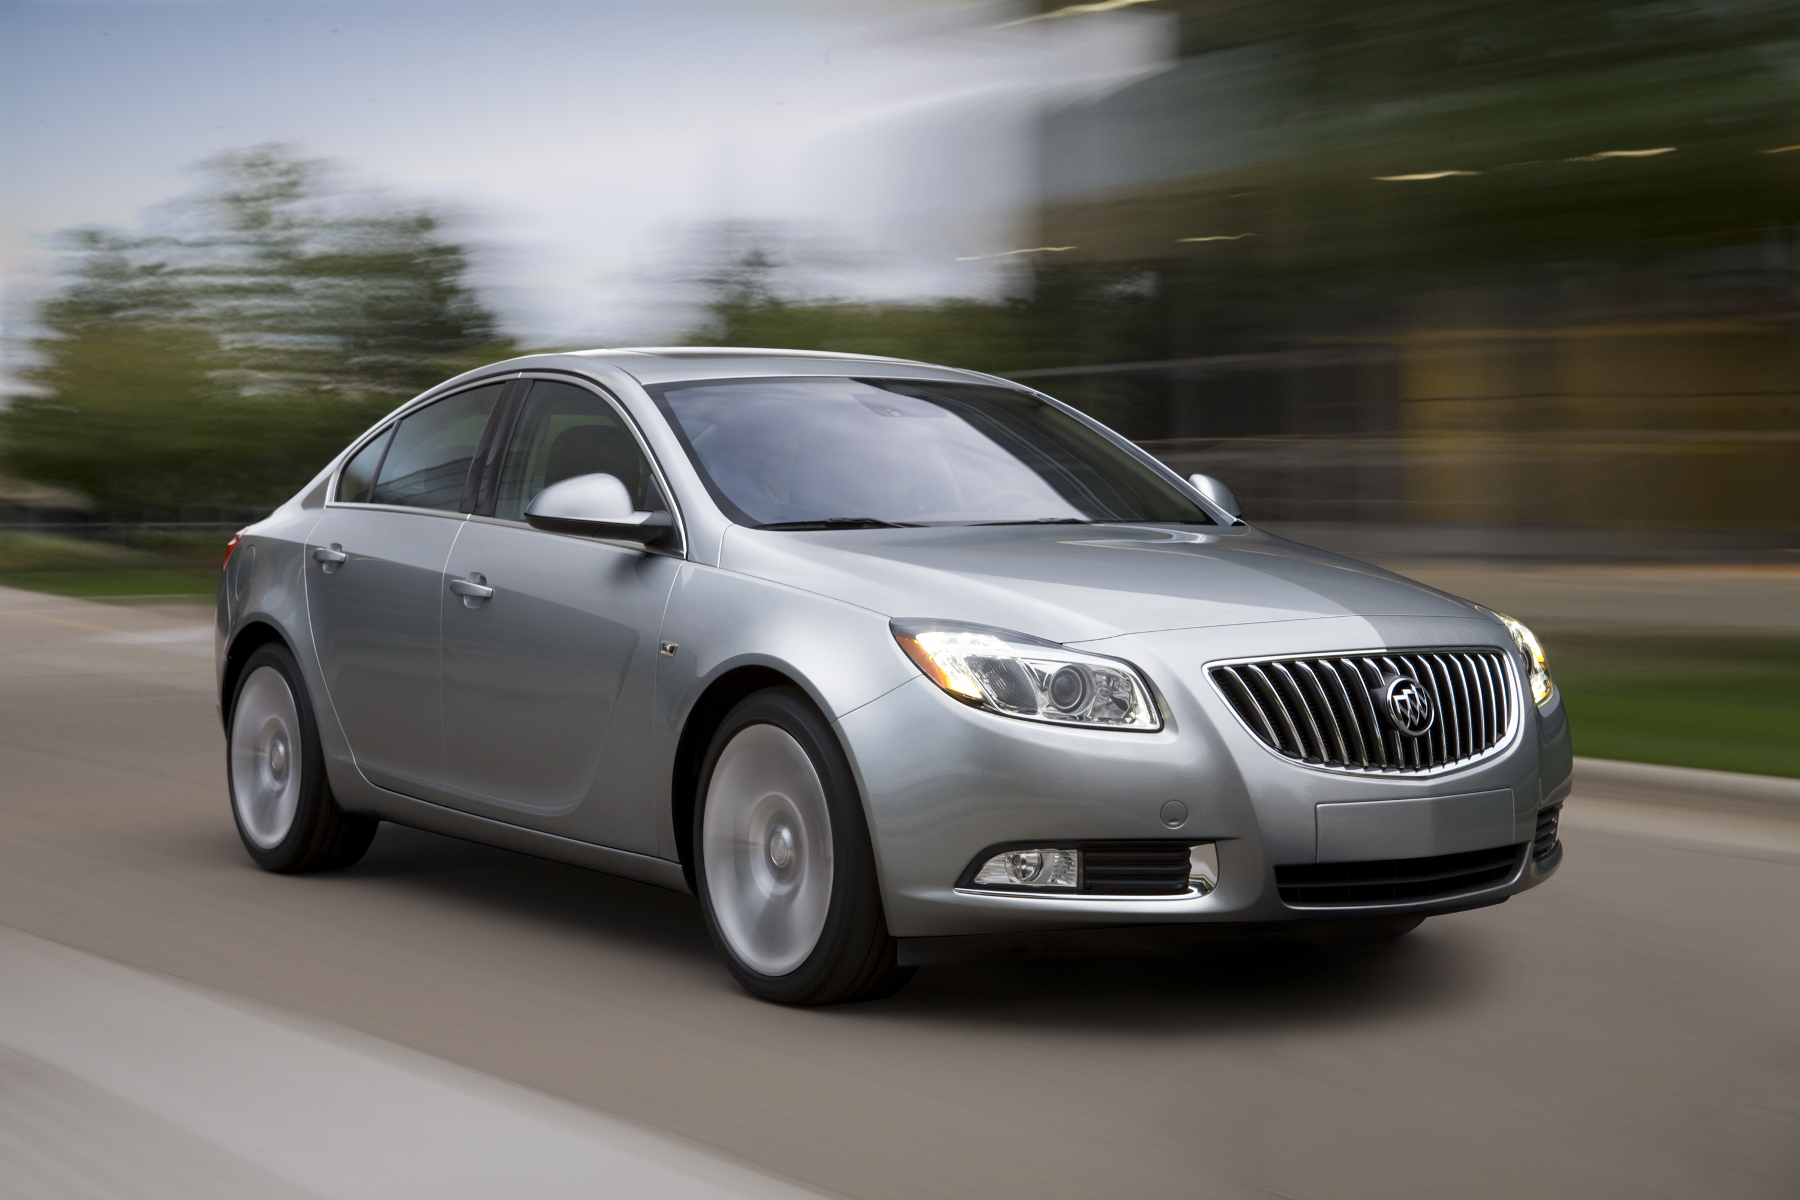 2011 Buick Regal #12